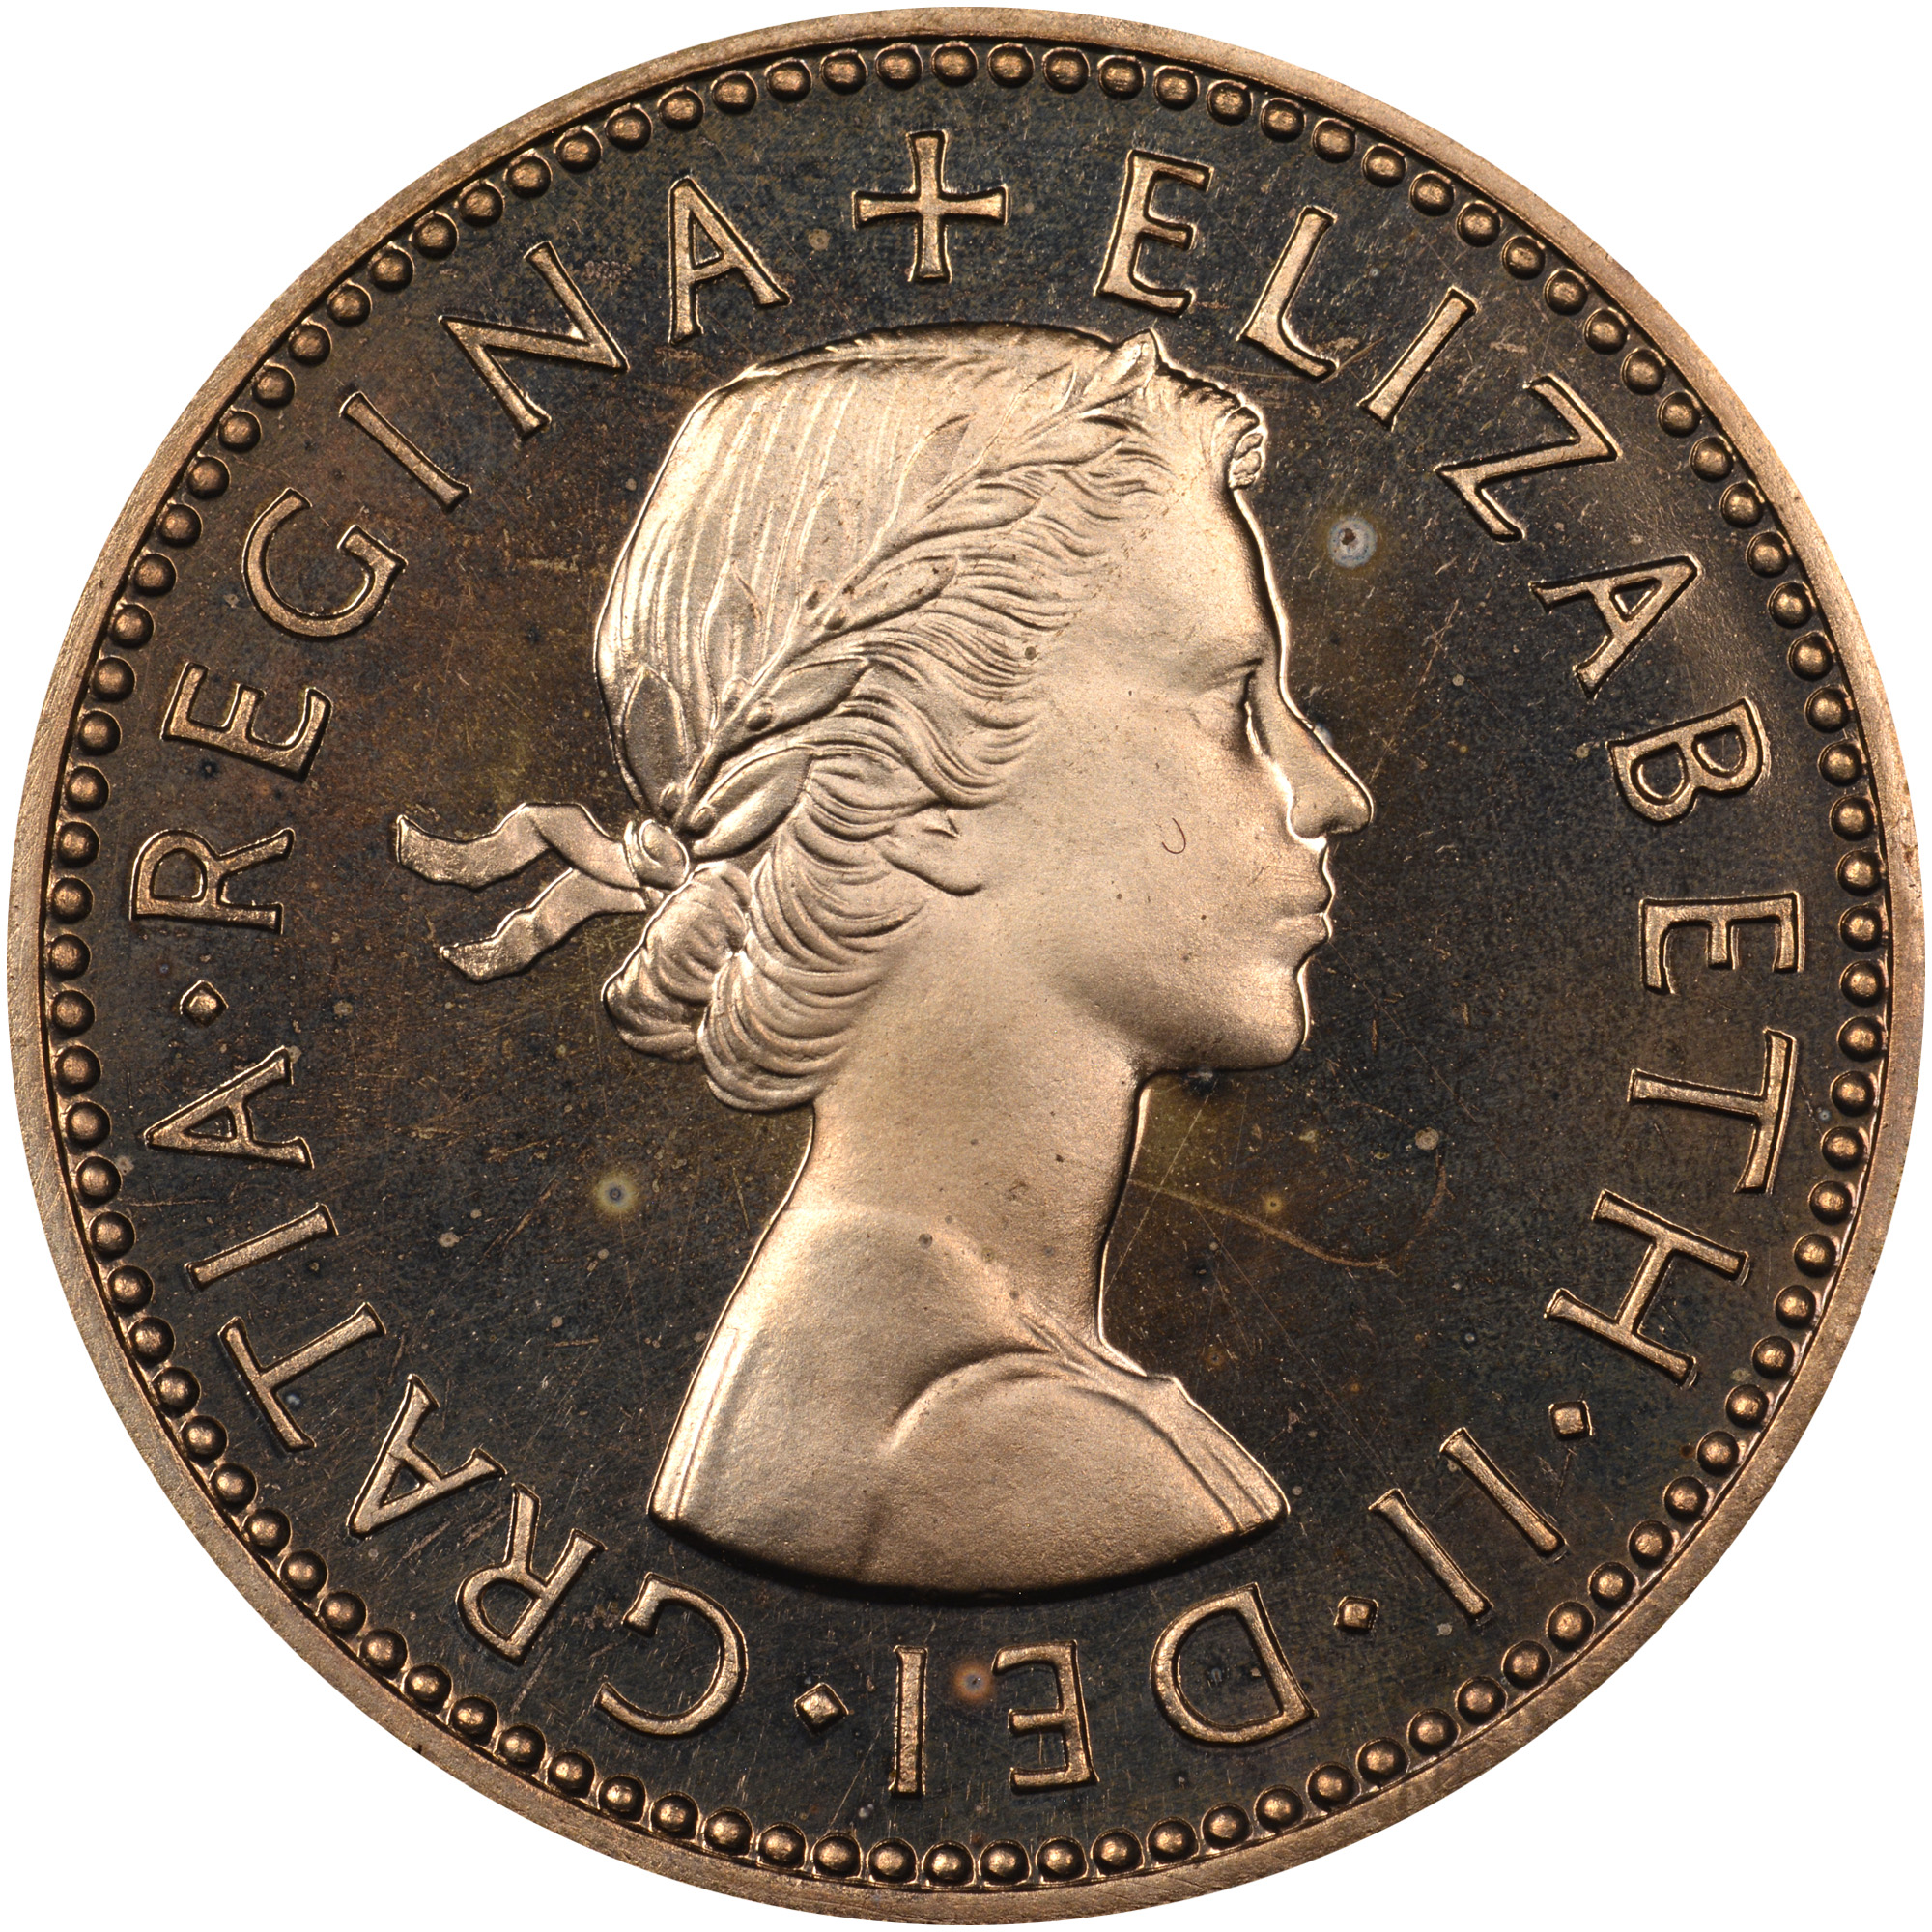 1954 shilling coin value